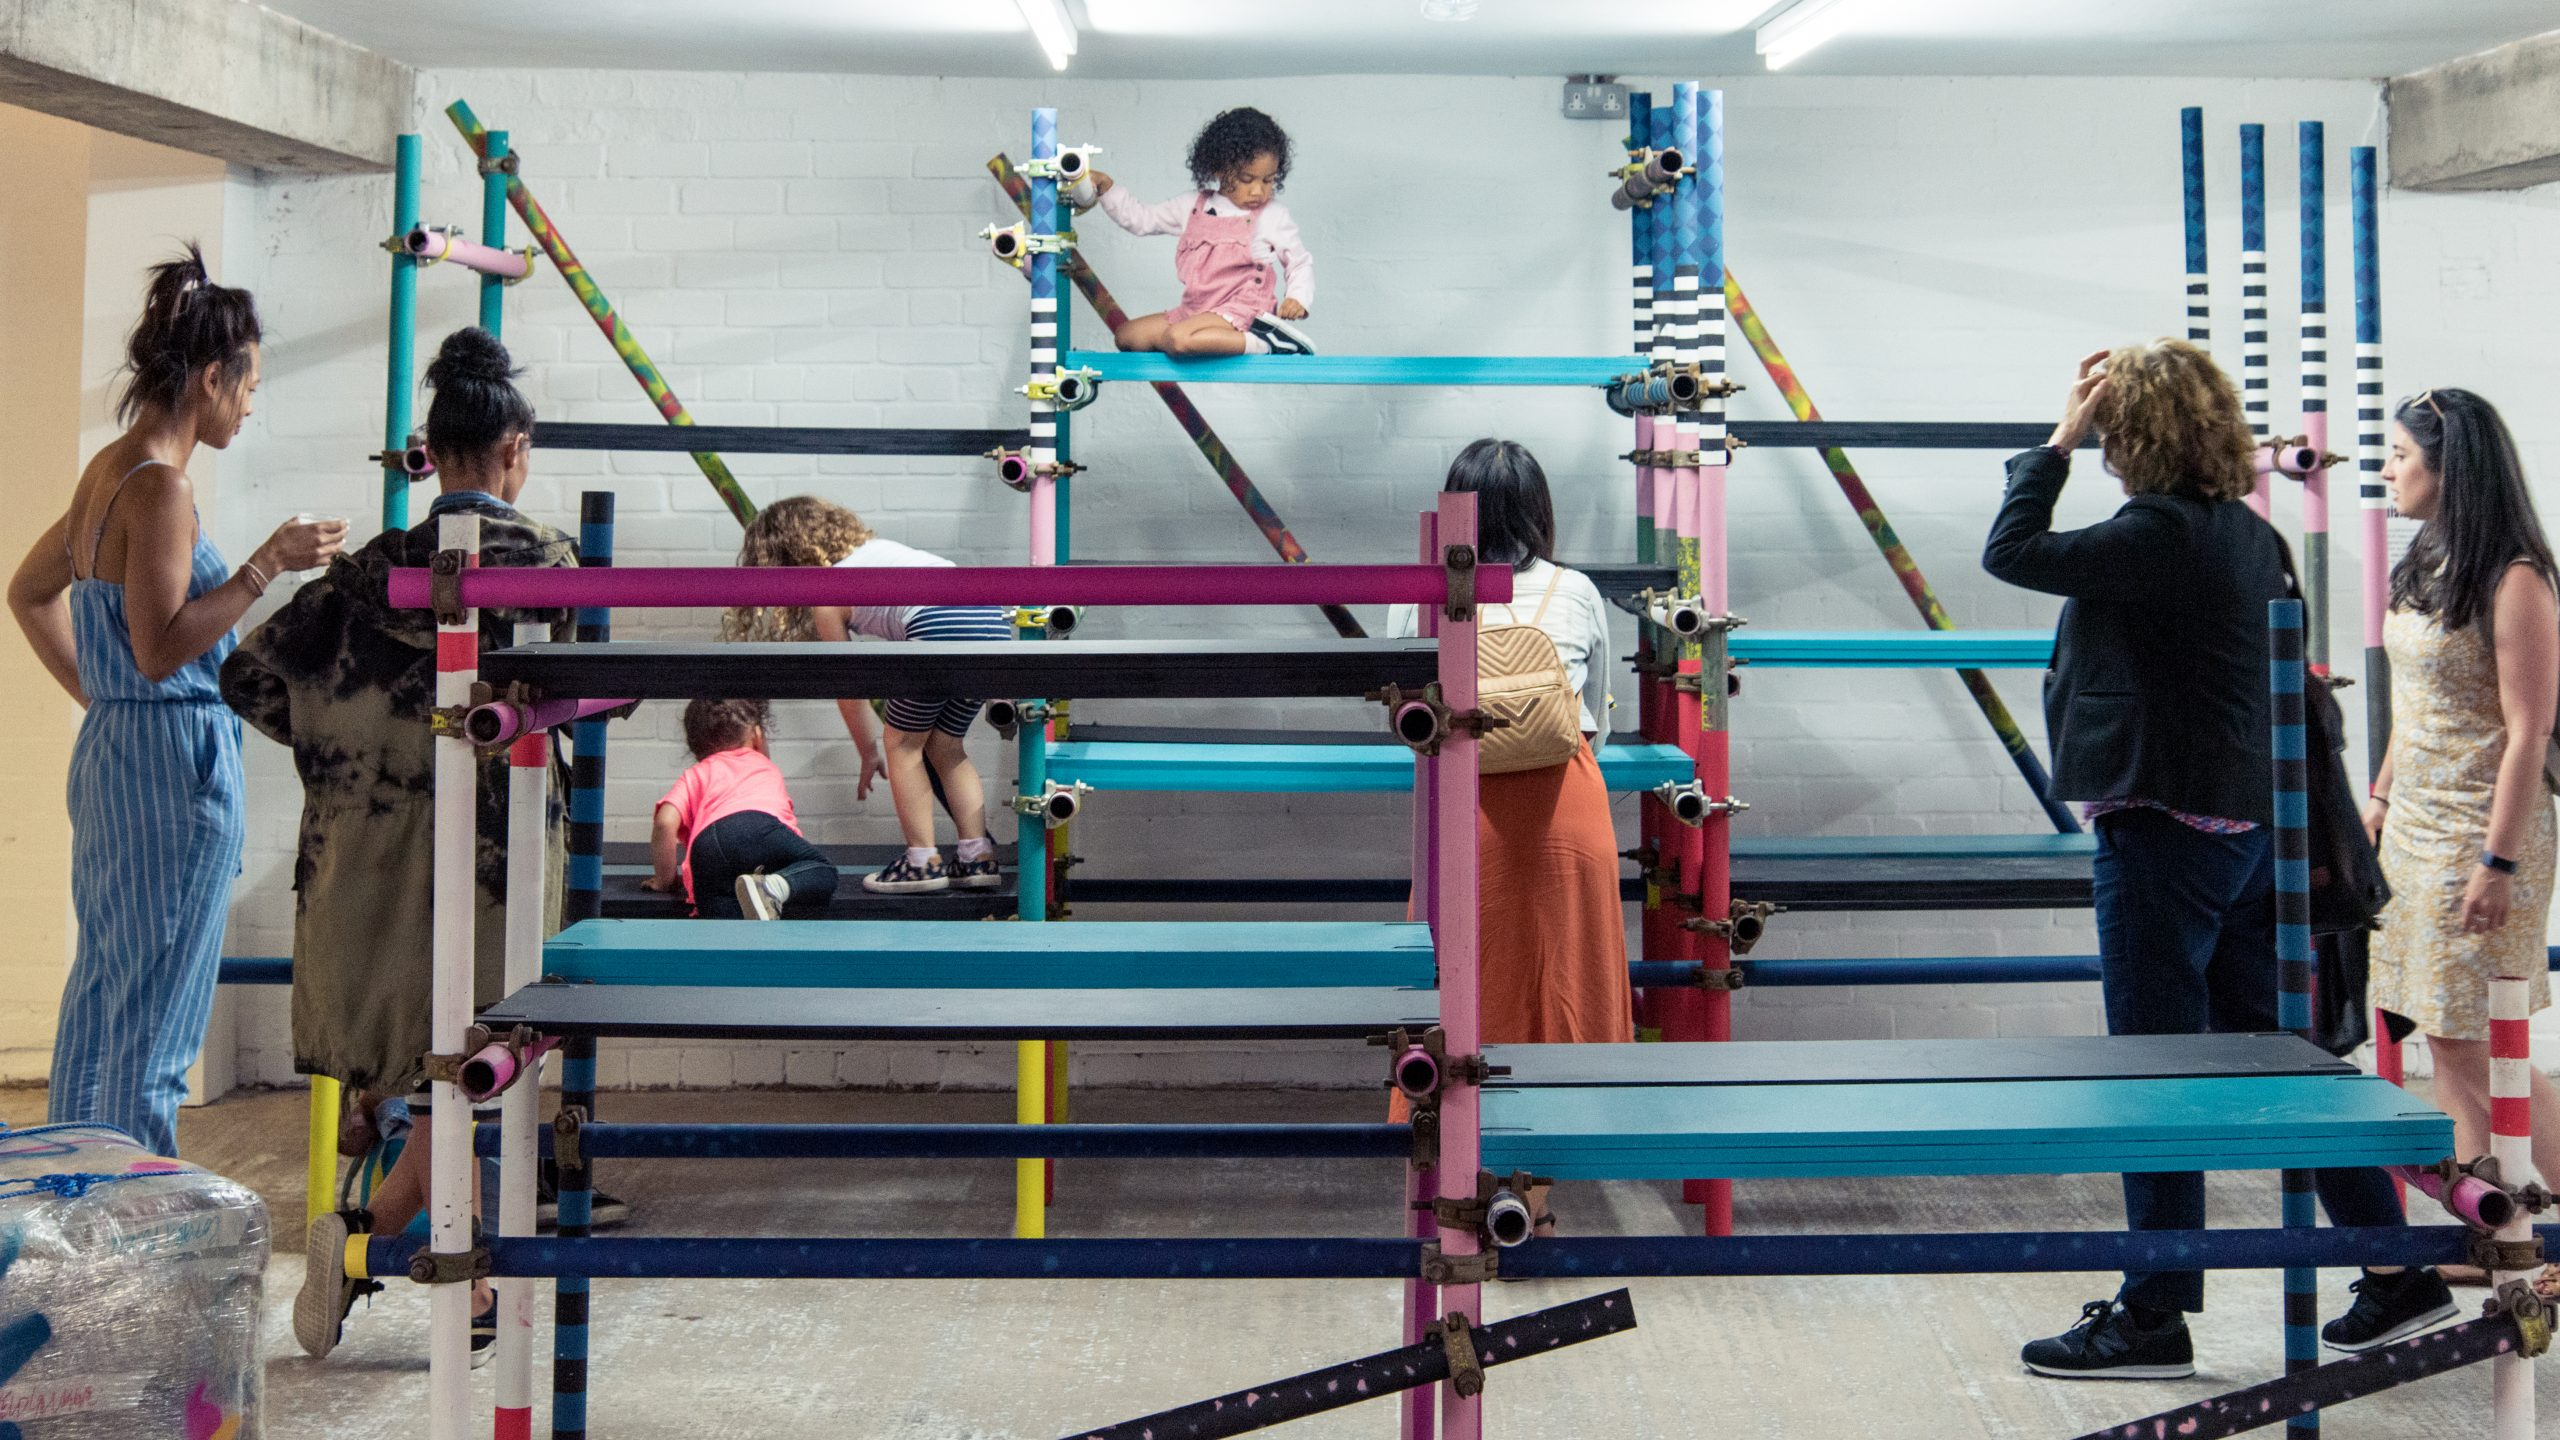 Children and adults climb on installlation in a gallery